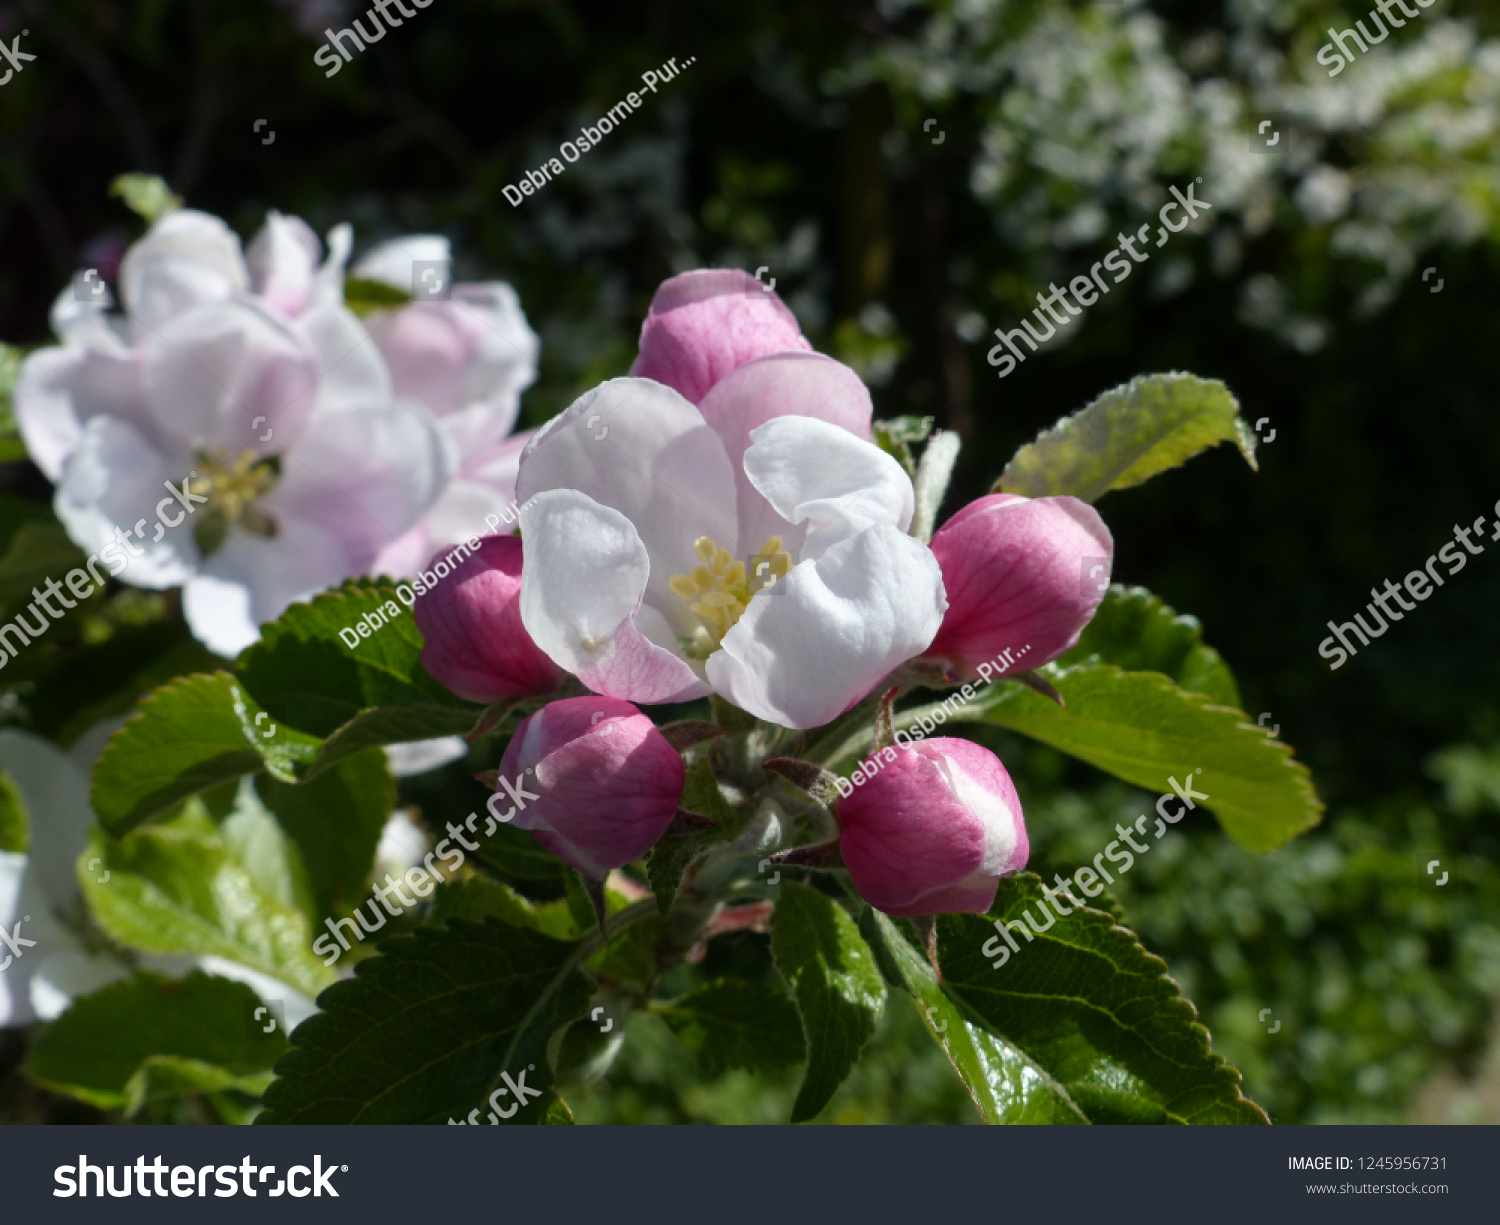 Cox's Orange Pippin Malus Domestica flowering blossom flowers pink open in sunlight green background spring concept